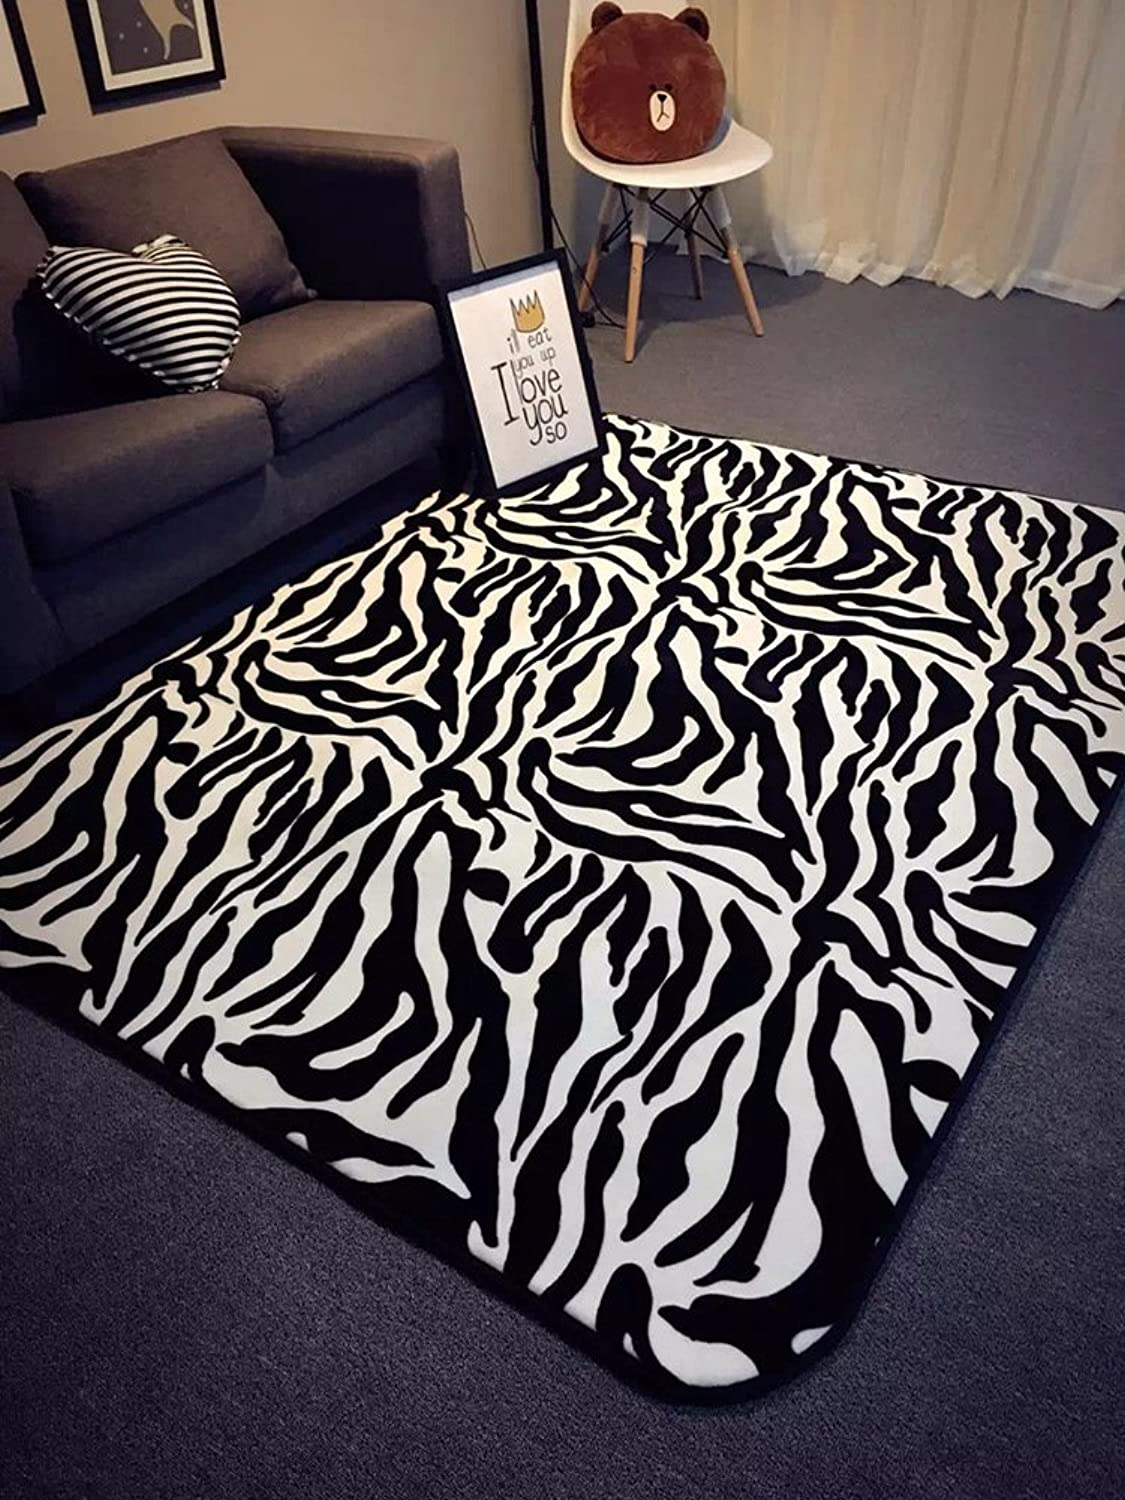 Padded stripe mat Fashion personality mat Living room Bedroom mats-C 60x180cm(24x71inch)